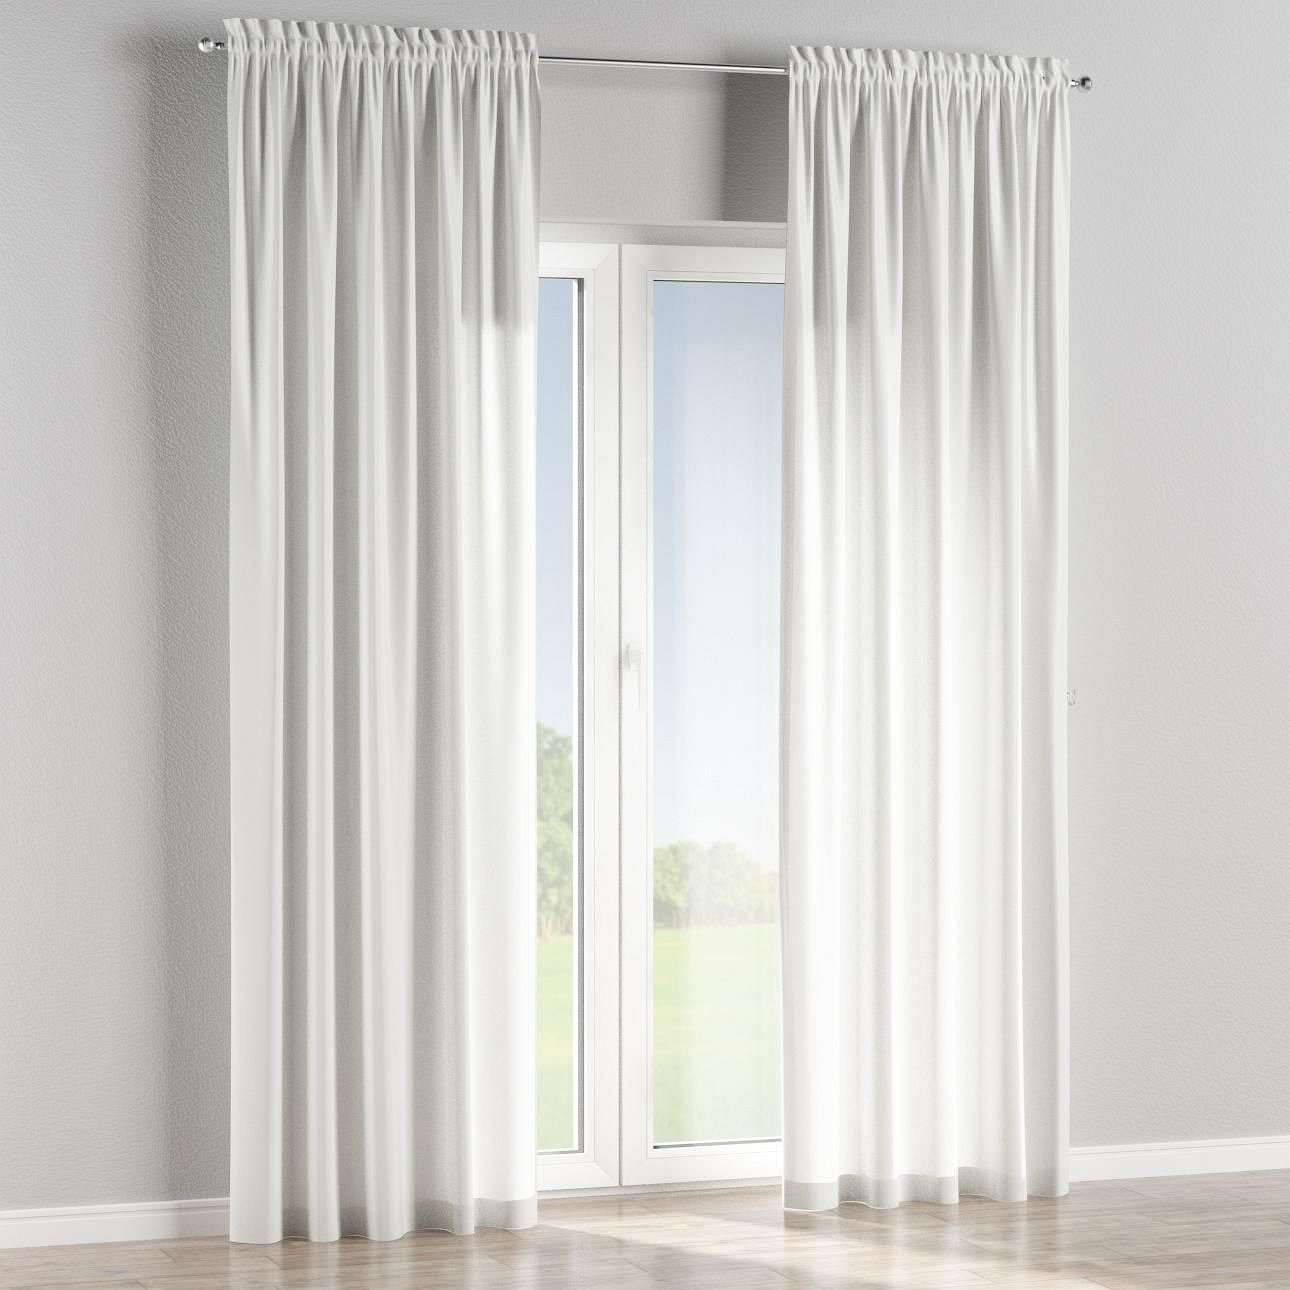 Slot and frill curtains in collection Milano, fabric: 150-22